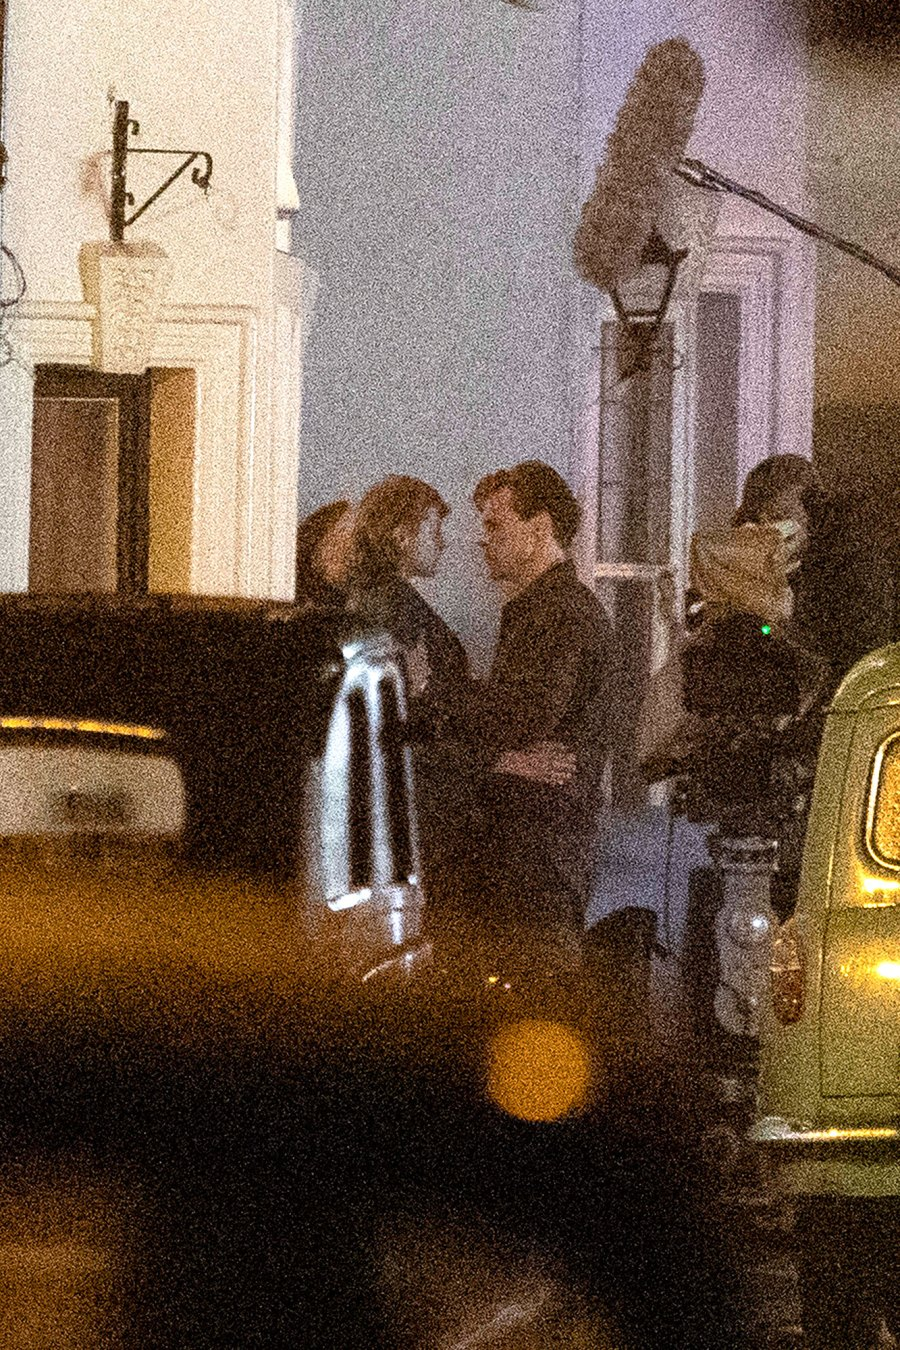 Harry Styles and The Crown Emma Corrin Kiss Passionately on the My Policeman Set 4